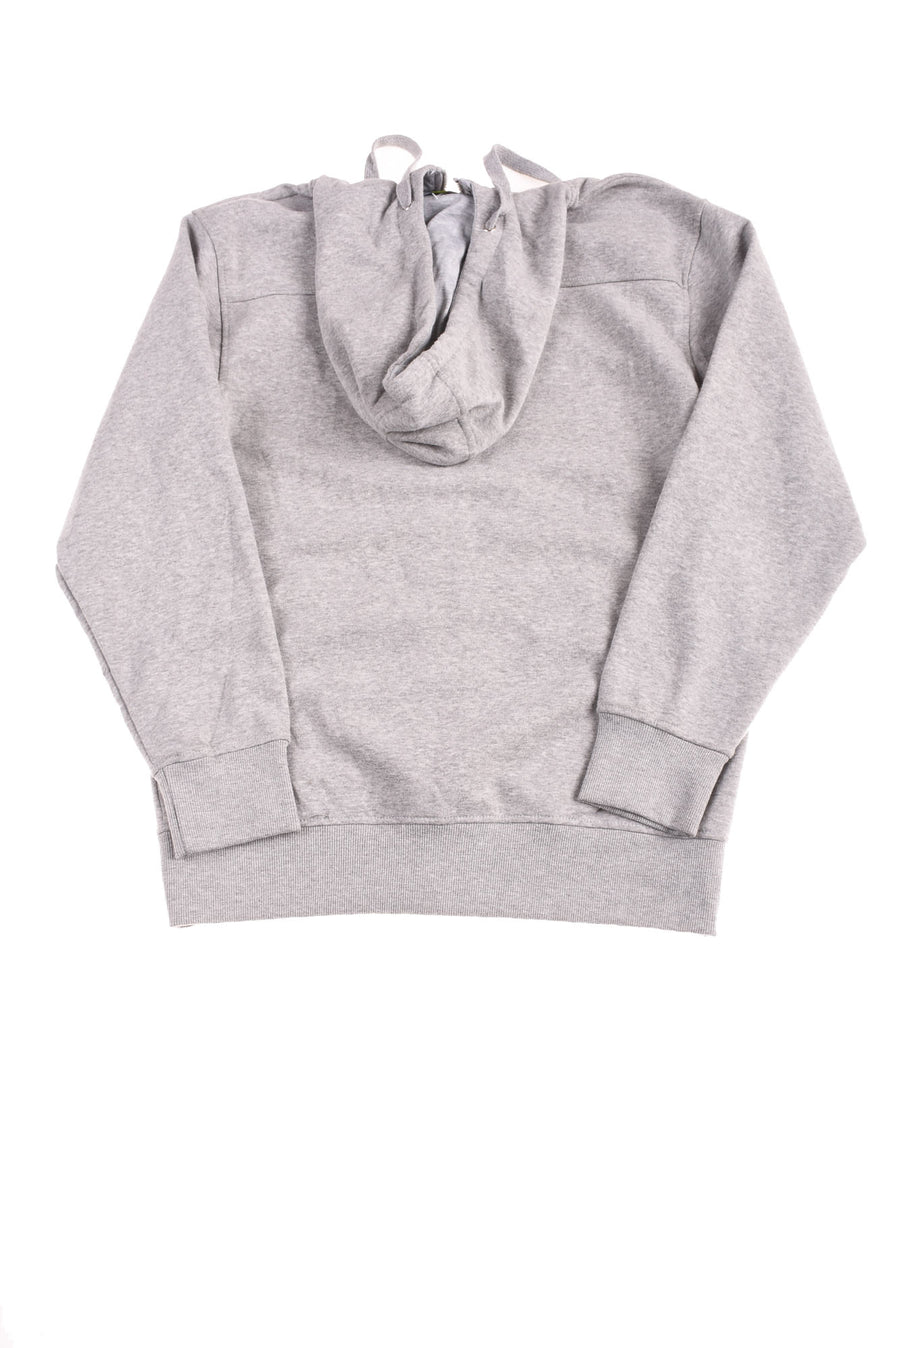 USED LA Gear Men's Zip Hoodie Small Gray